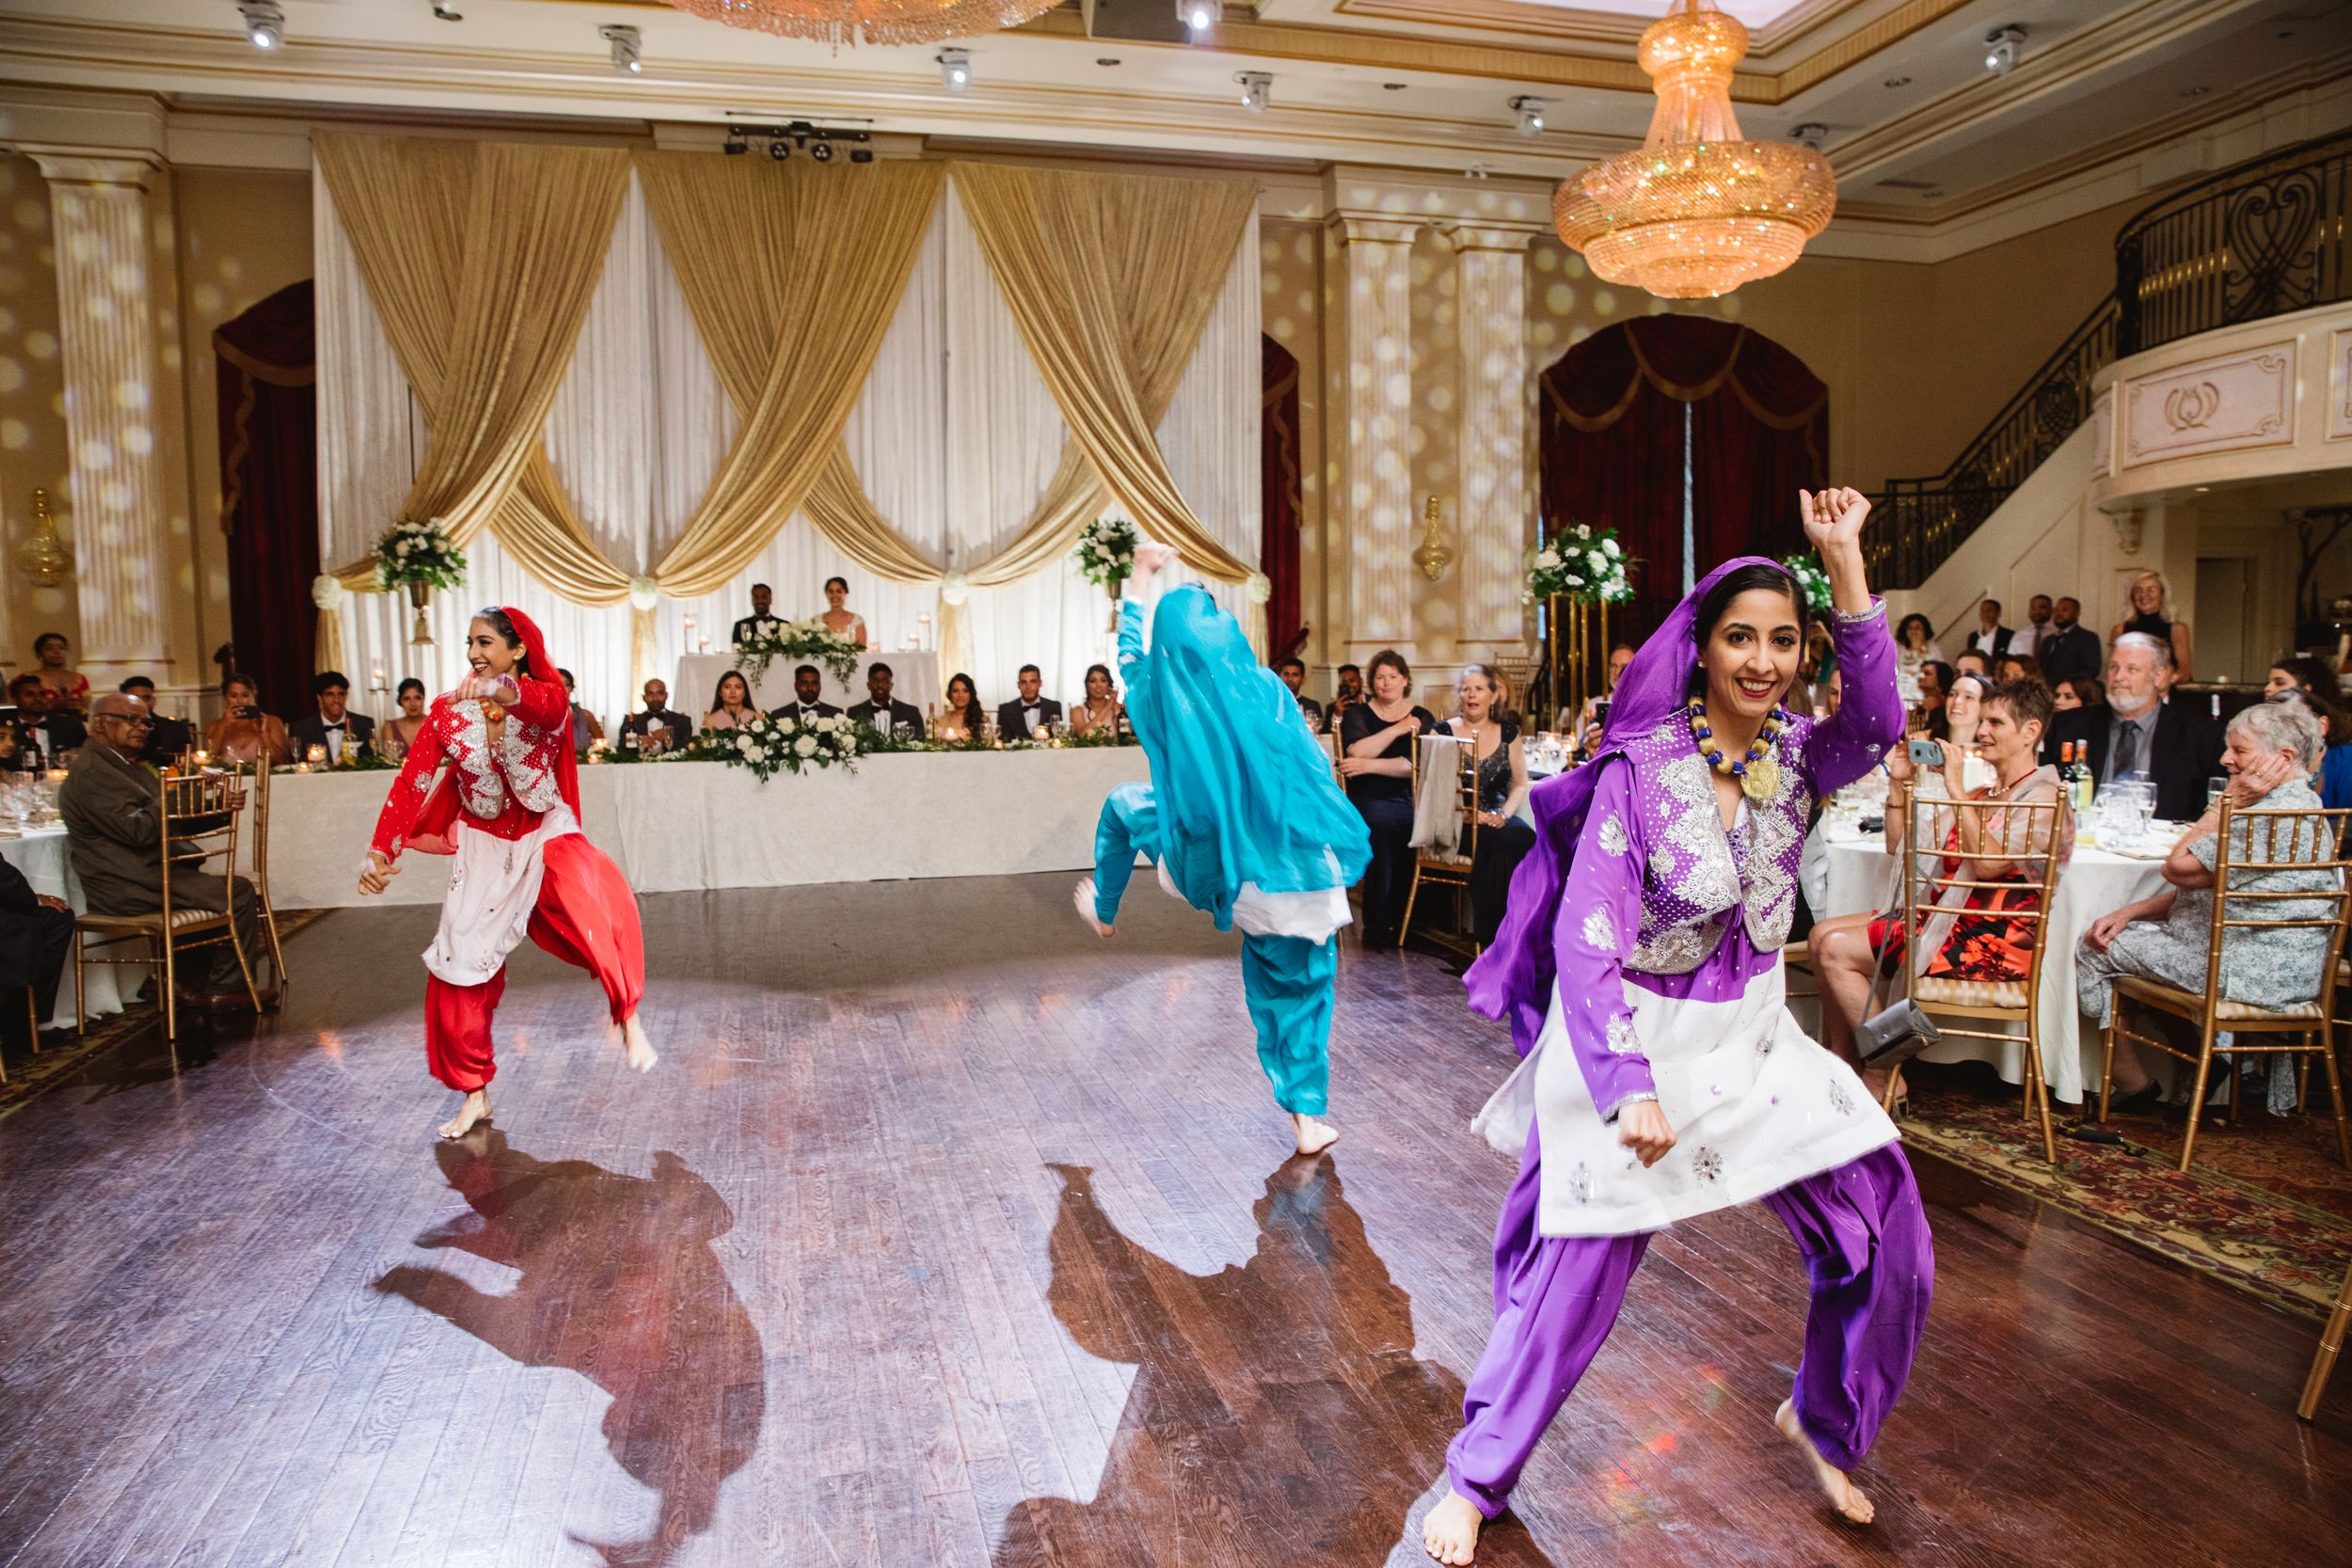 bhangra dancers at a wedding in toronto